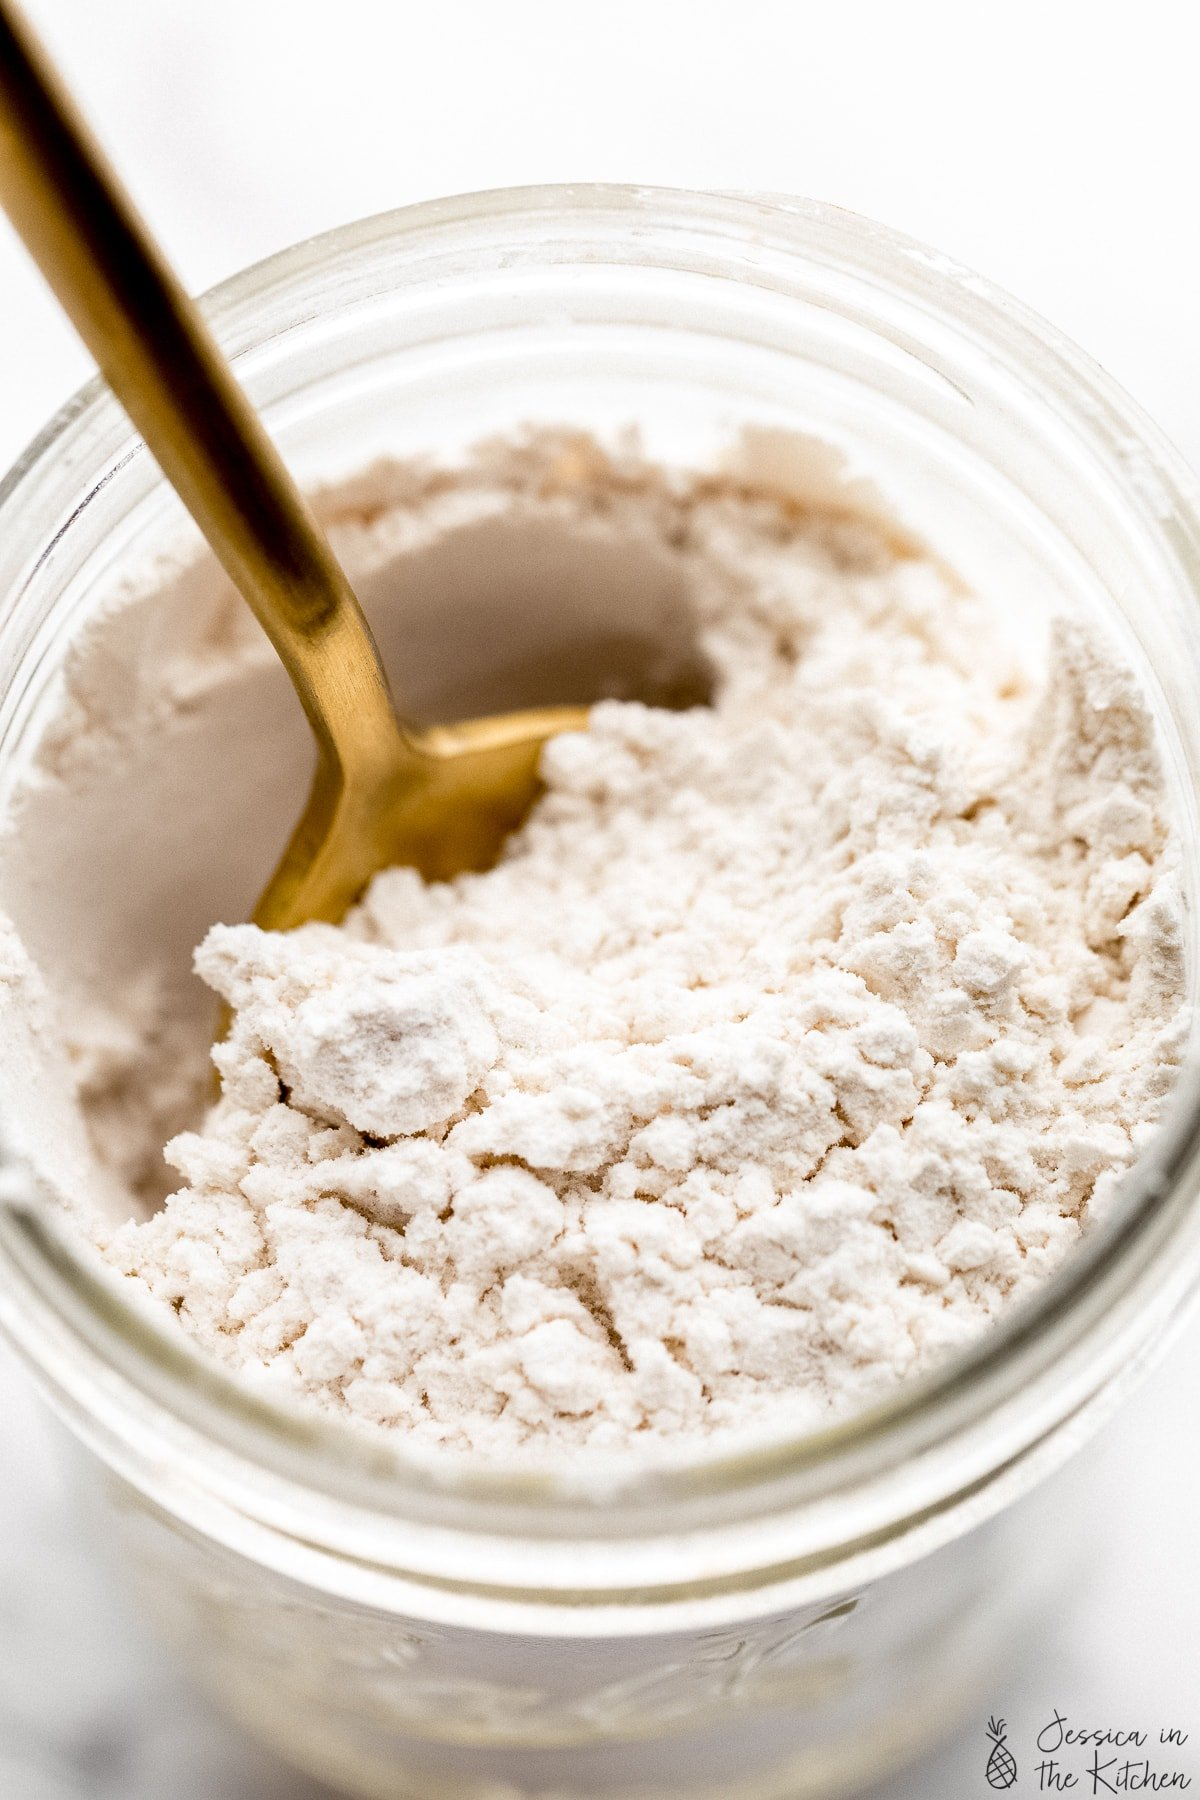 Easy homemade powered sugar in a glass Weck jar with a gold spoon in the powder.